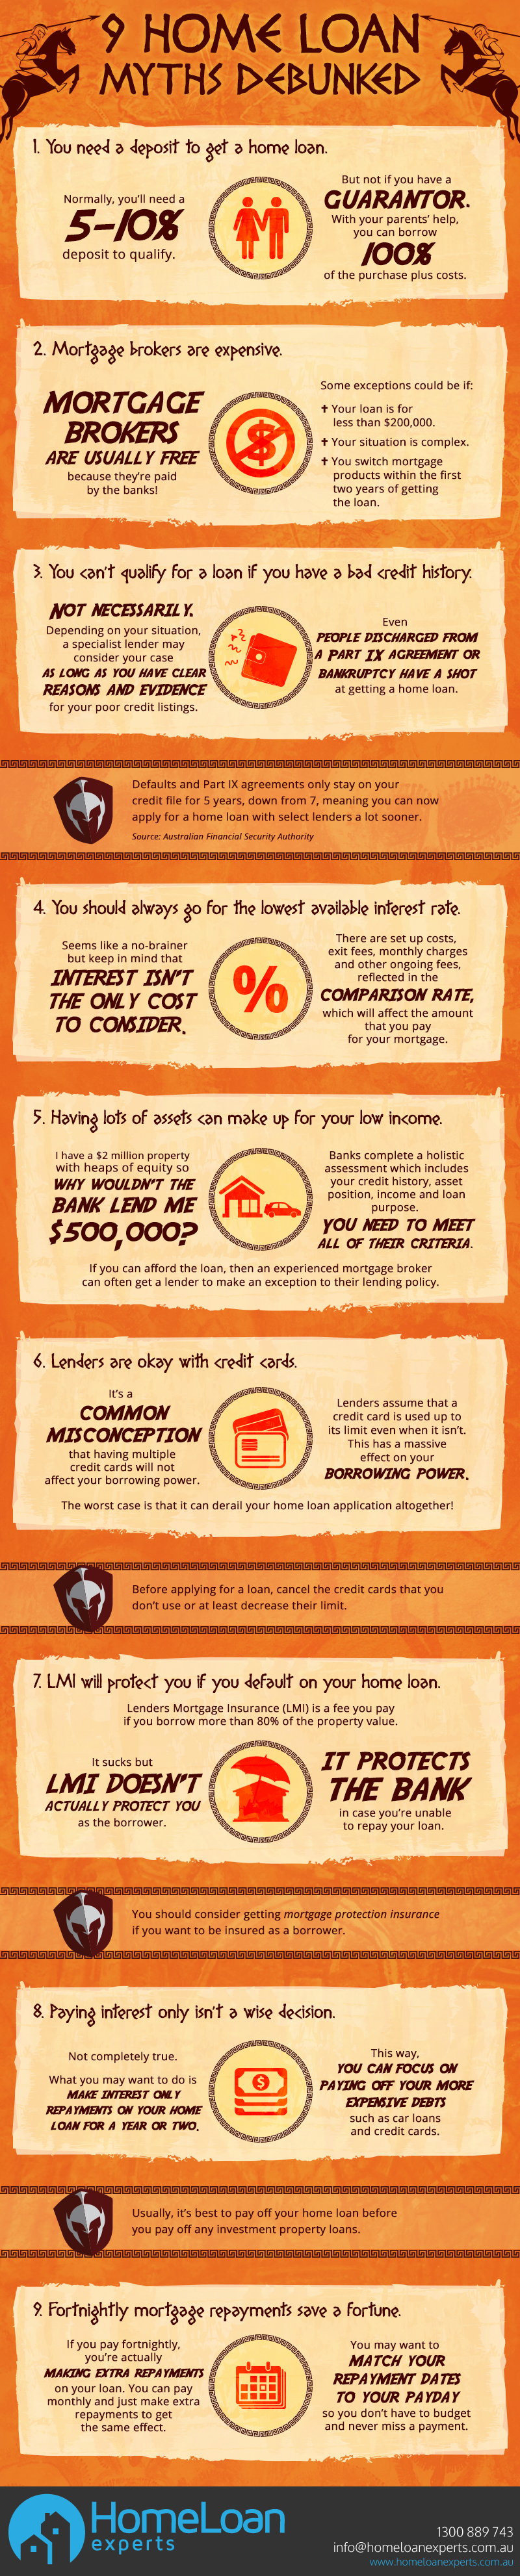 9-home-loan-myths-debunked